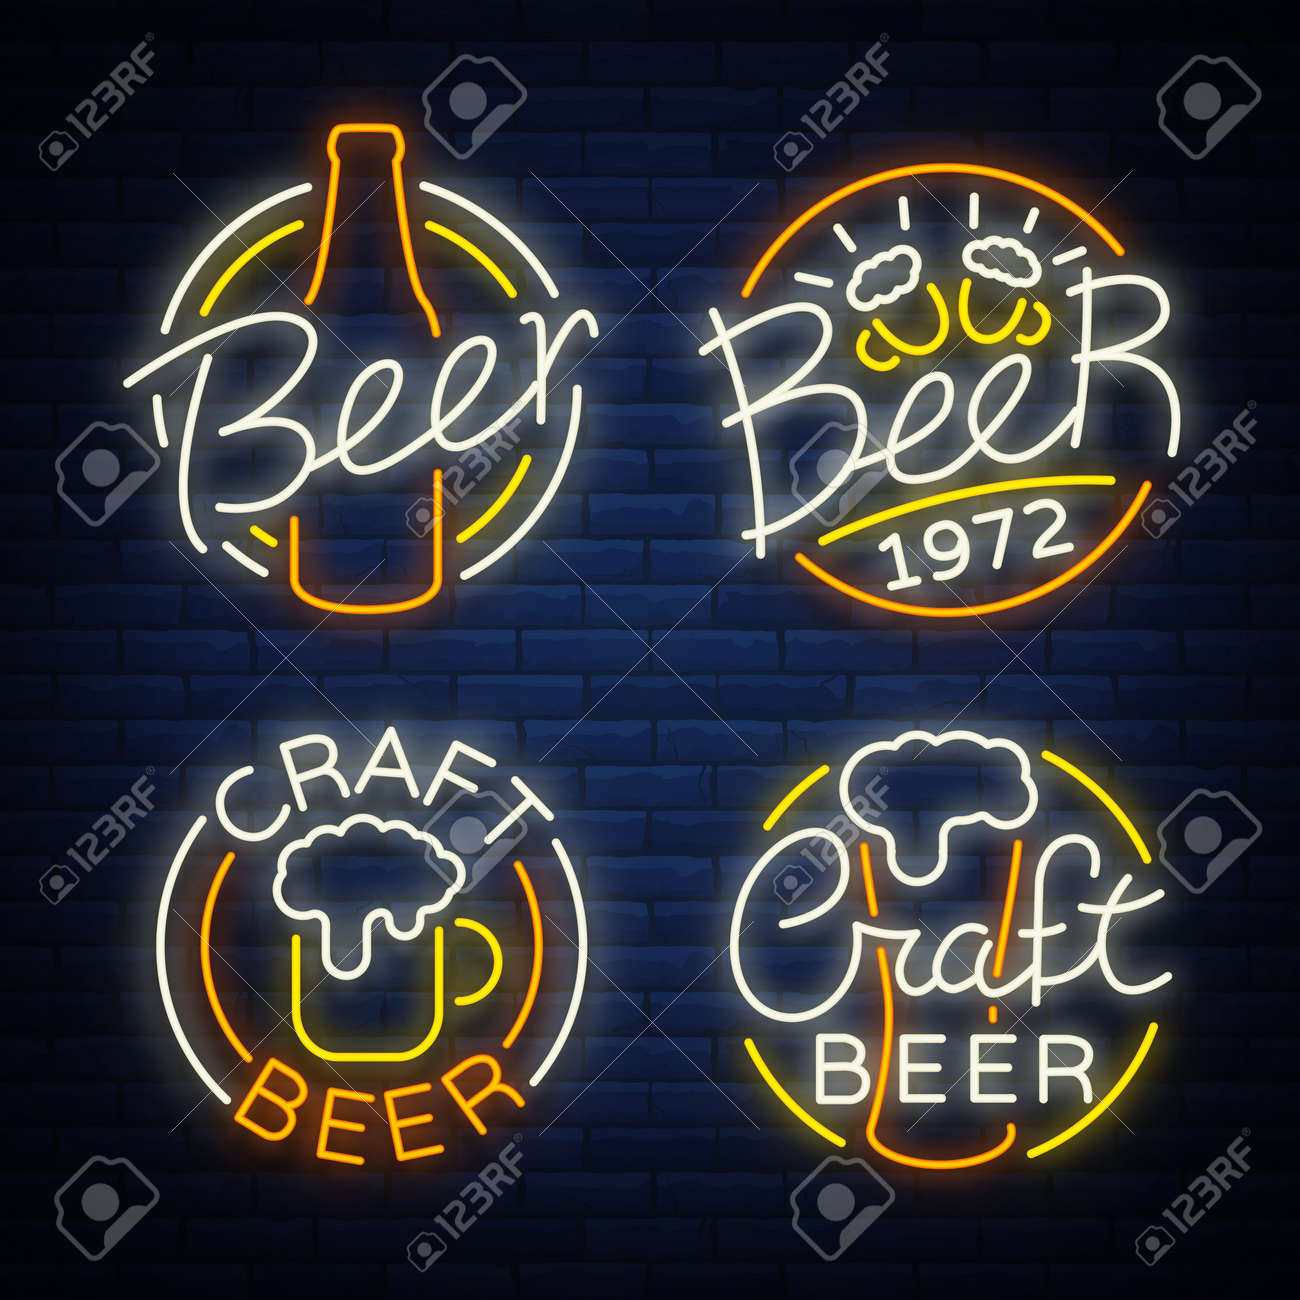 Set of beer logo, neon signs, logos of emblem in neon style, vector illustration. For the beer house bar pub, brewery. Night beer advertising, neon glowing bright sign. - 88551920